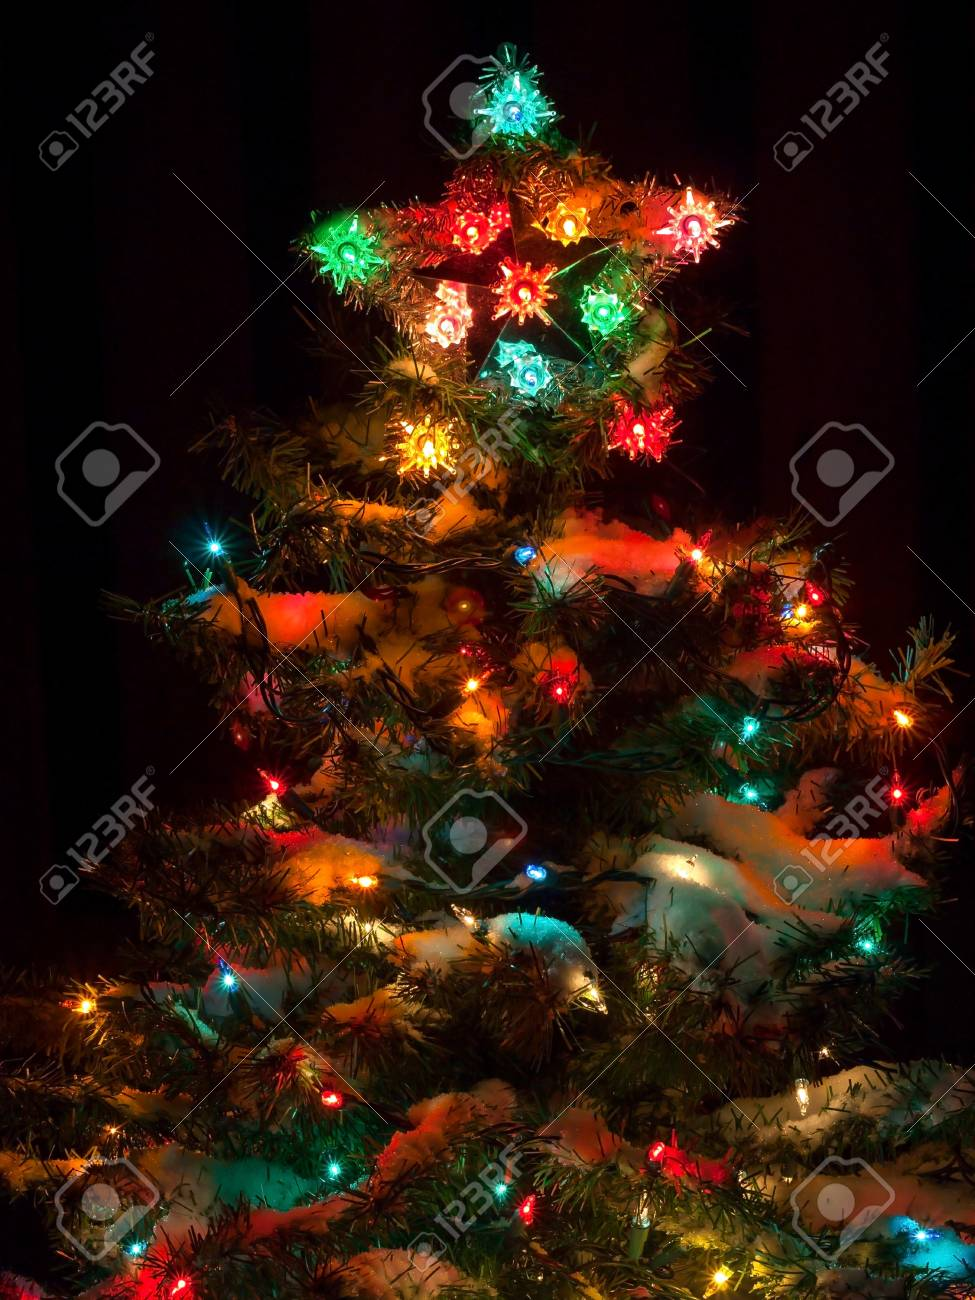 Snow Covered Christmas Tree With Multi Colored Lights At Night Stock